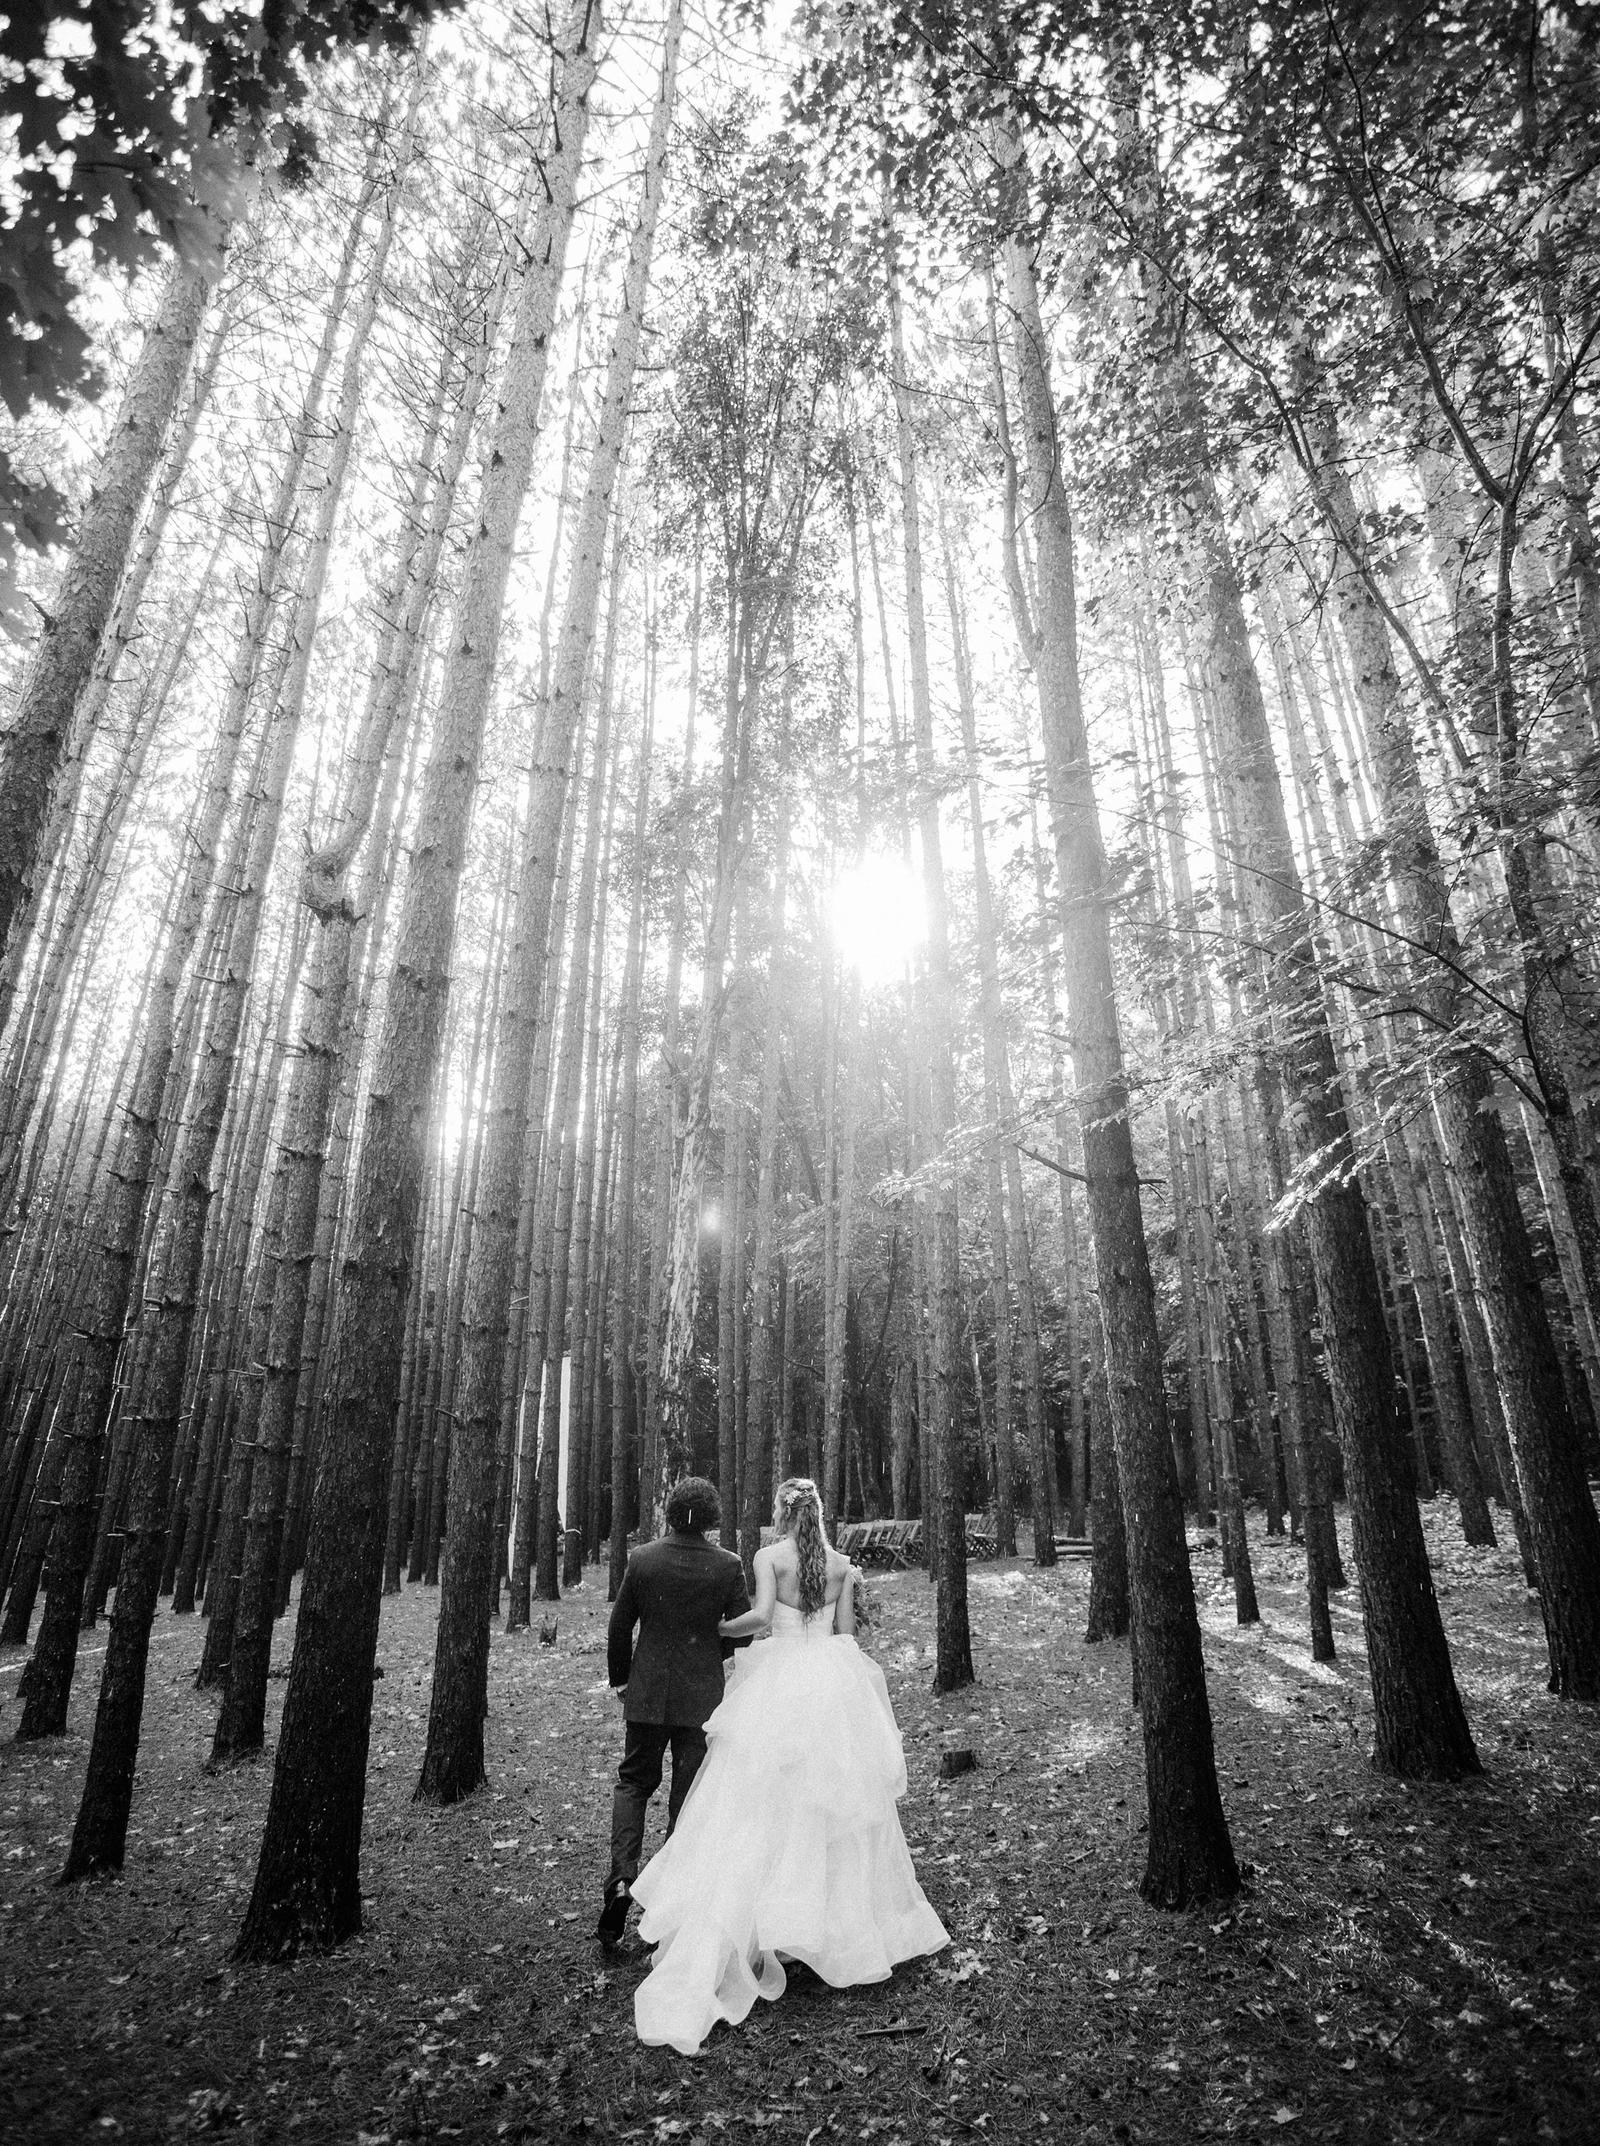 Wedding Photography | Bride and groom walk through the woods, the sun setting in the background.